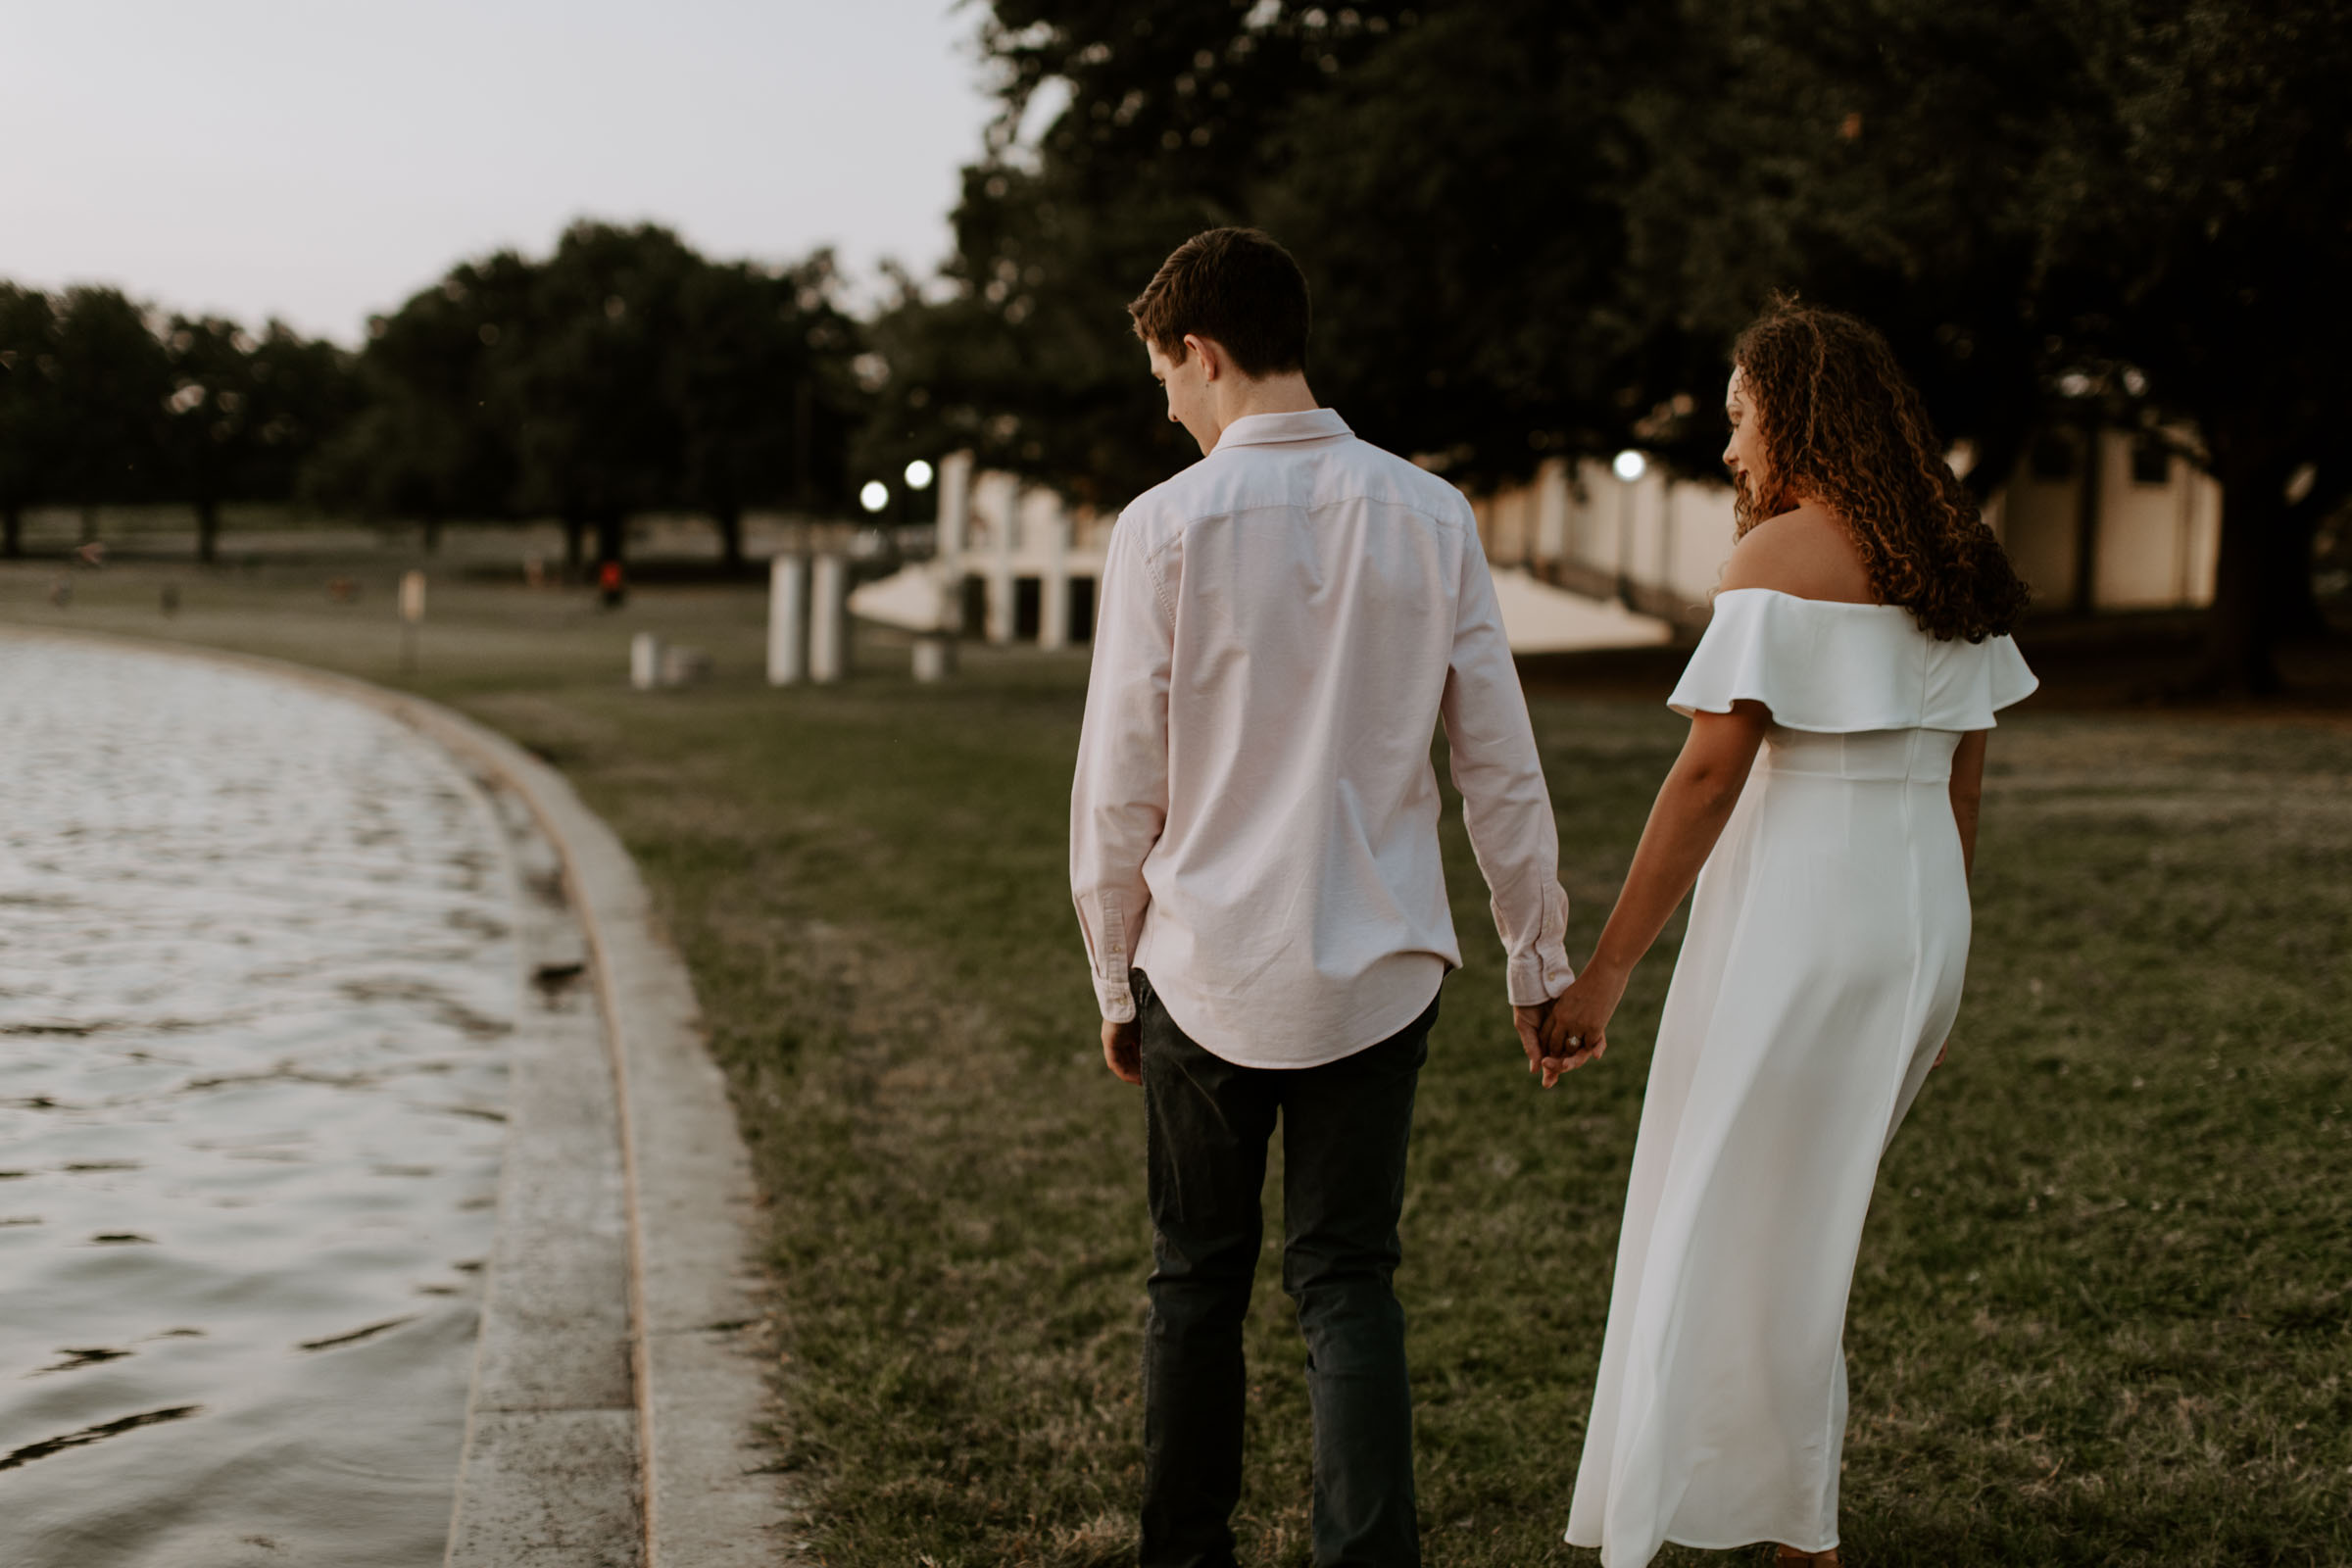 Couple walking and holding hands during their engagement session